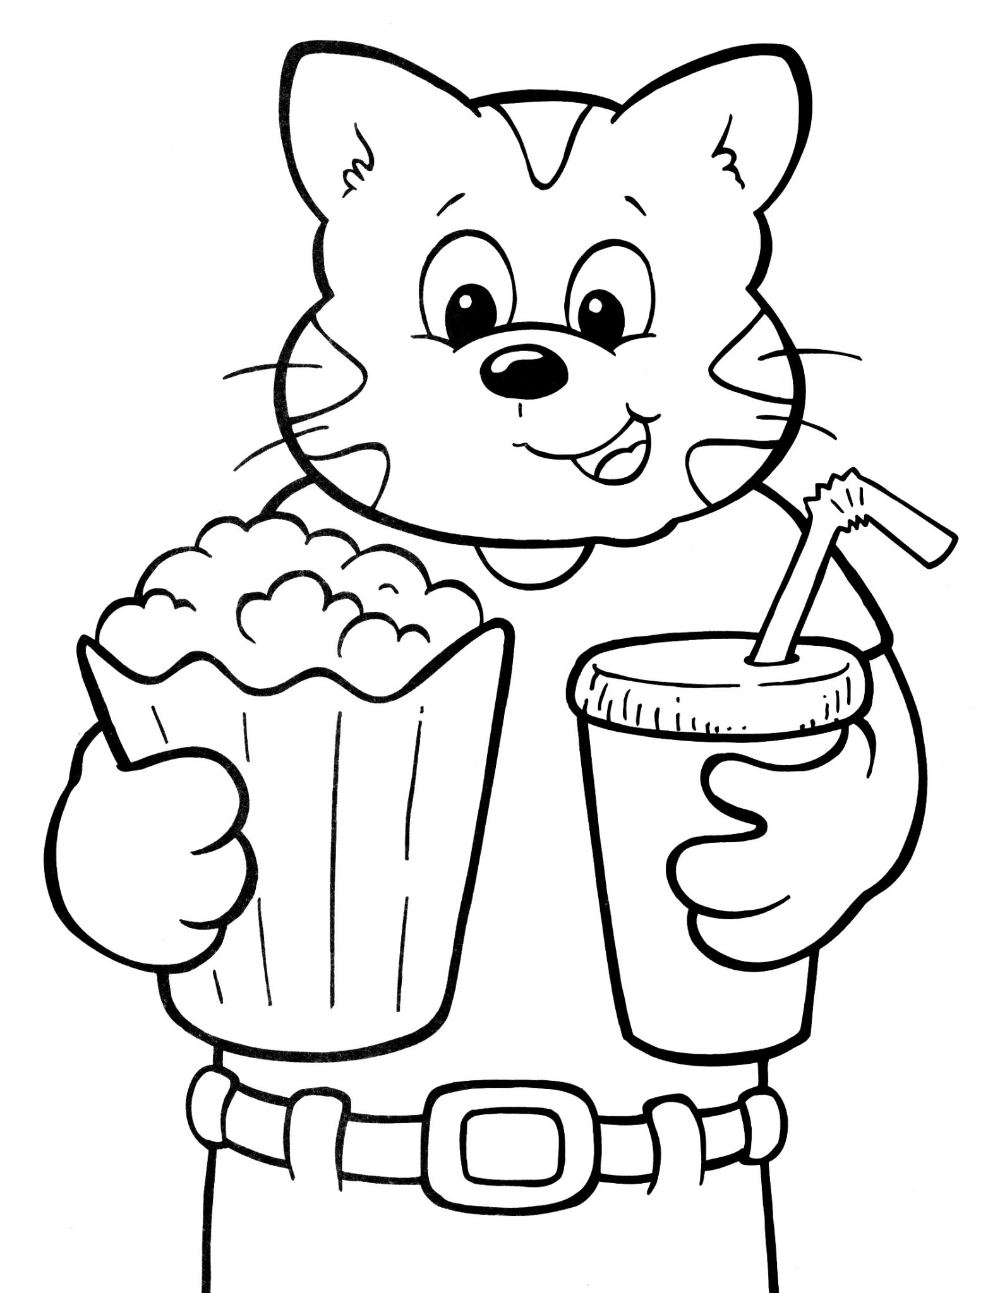 Crayola Coloring Pages For Kids Free Coloring Pages Crayola Coloring Pages Valentine Coloring Pages [ 1293 x 1000 Pixel ]